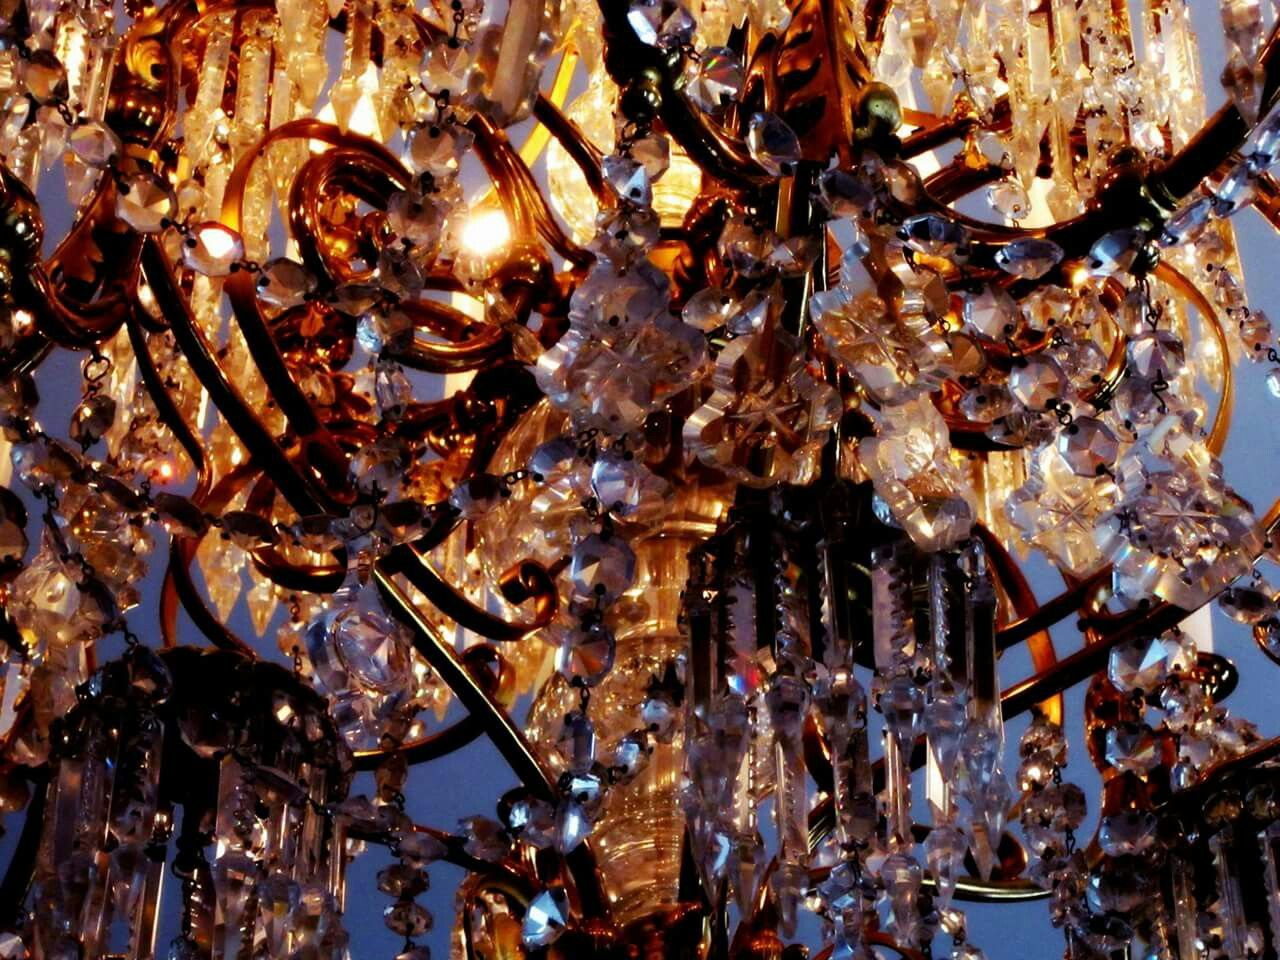 I want to swing from the chandelier studio ritti pinterest i want to swing from the chandelier aloadofball Choice Image